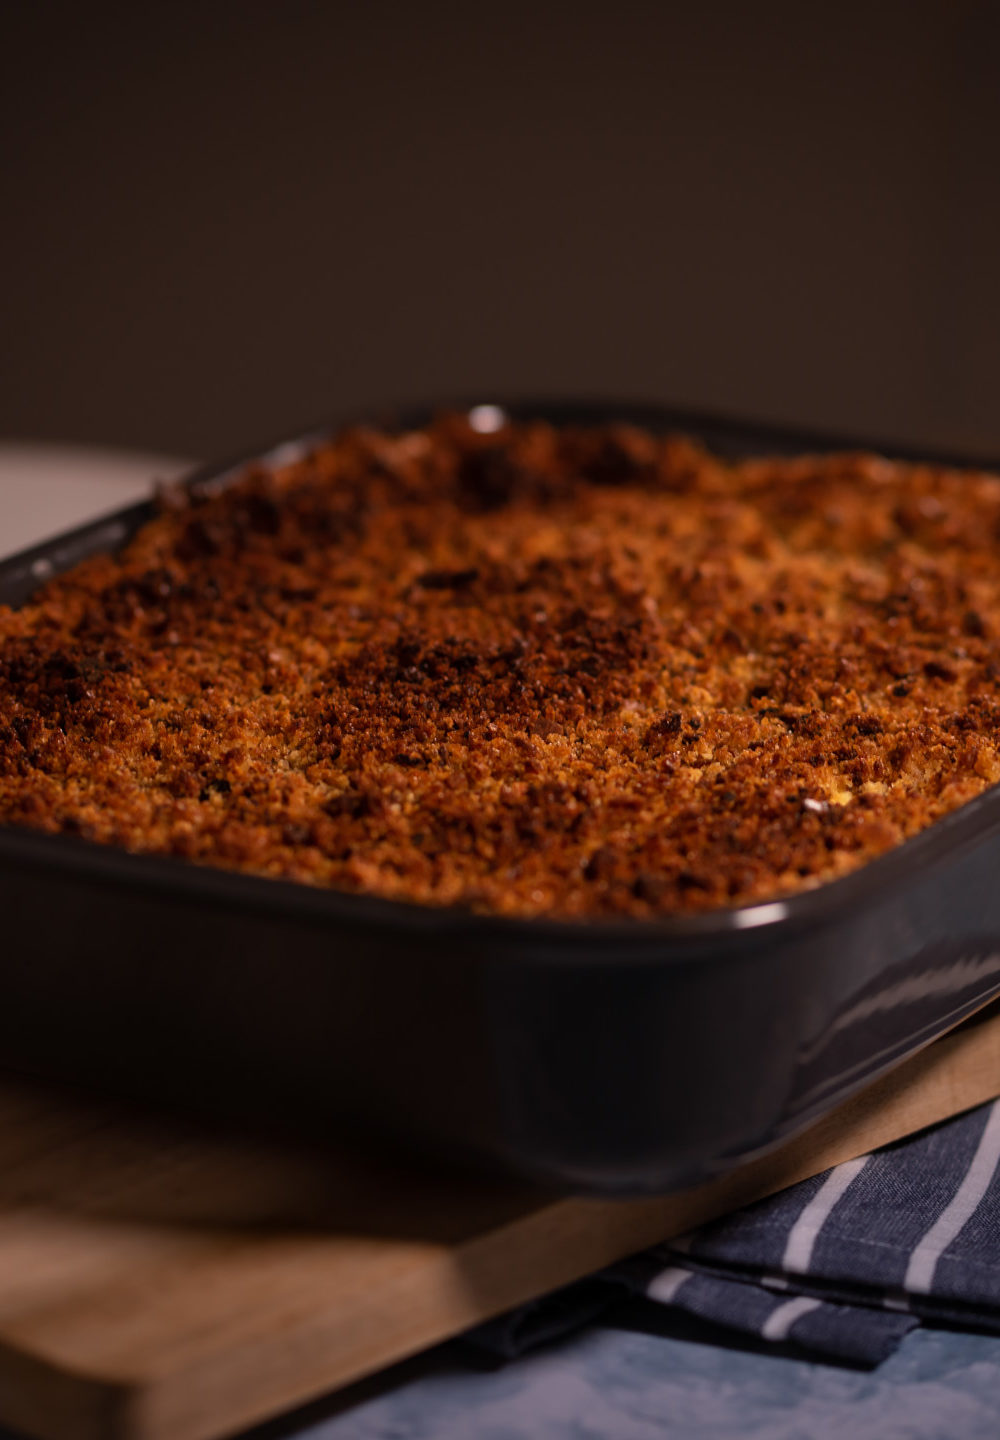 Fish pie in a pan placed on a wooden board